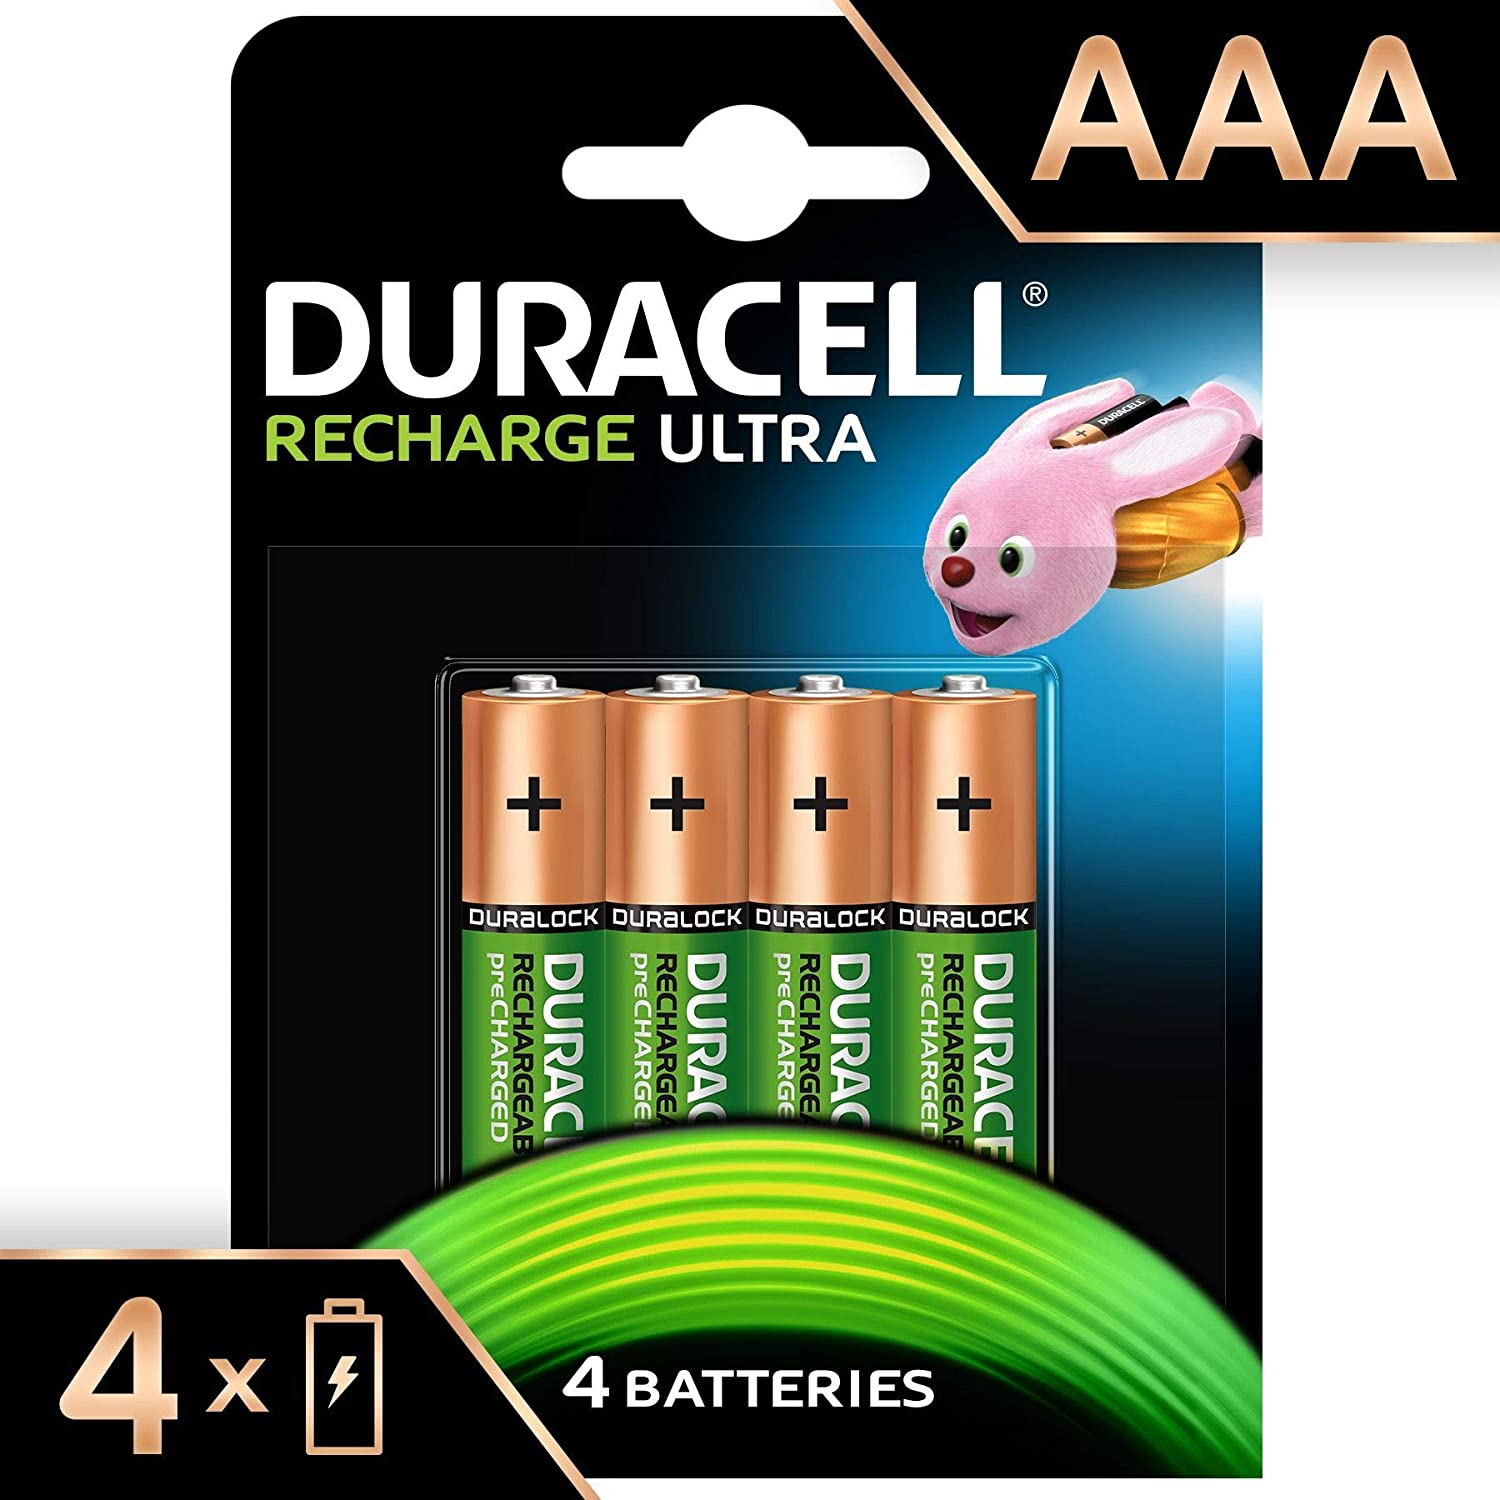 Duracell Recharge Ultra AAA - 900 mAh Batteries -Pack of 4